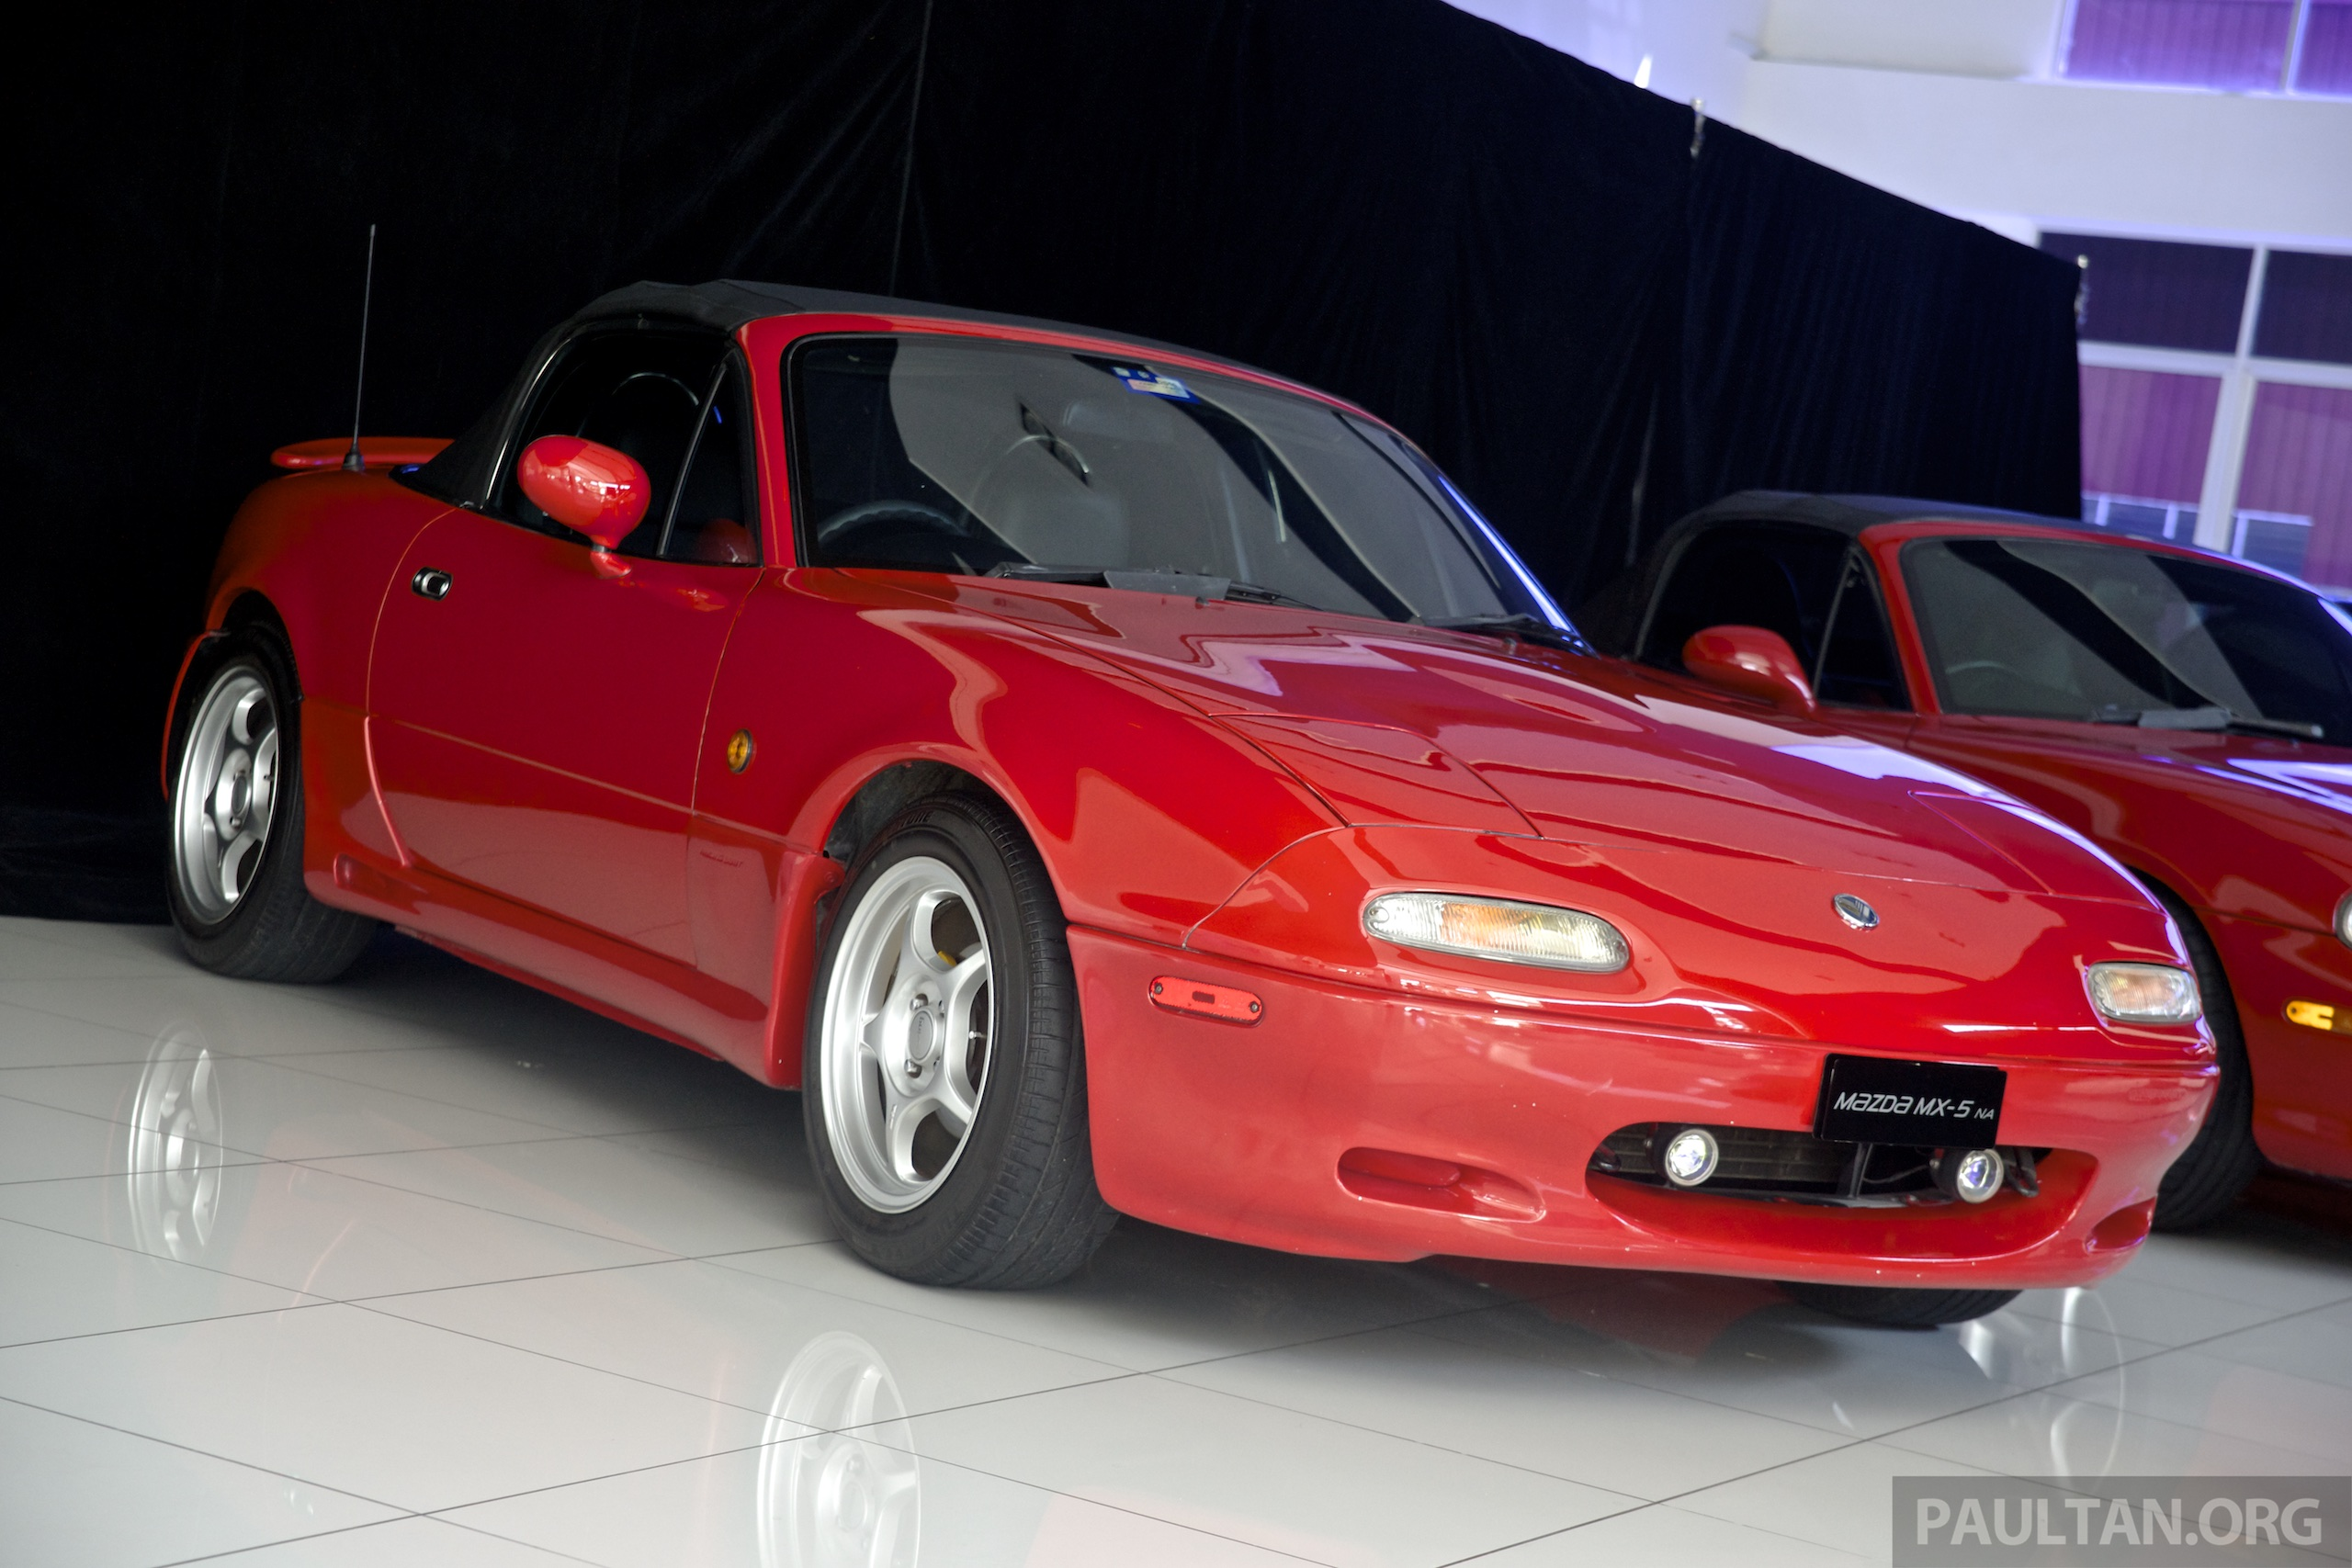 gallery mazda mx 5 through the years na nb nc paul tan image 369985. Black Bedroom Furniture Sets. Home Design Ideas